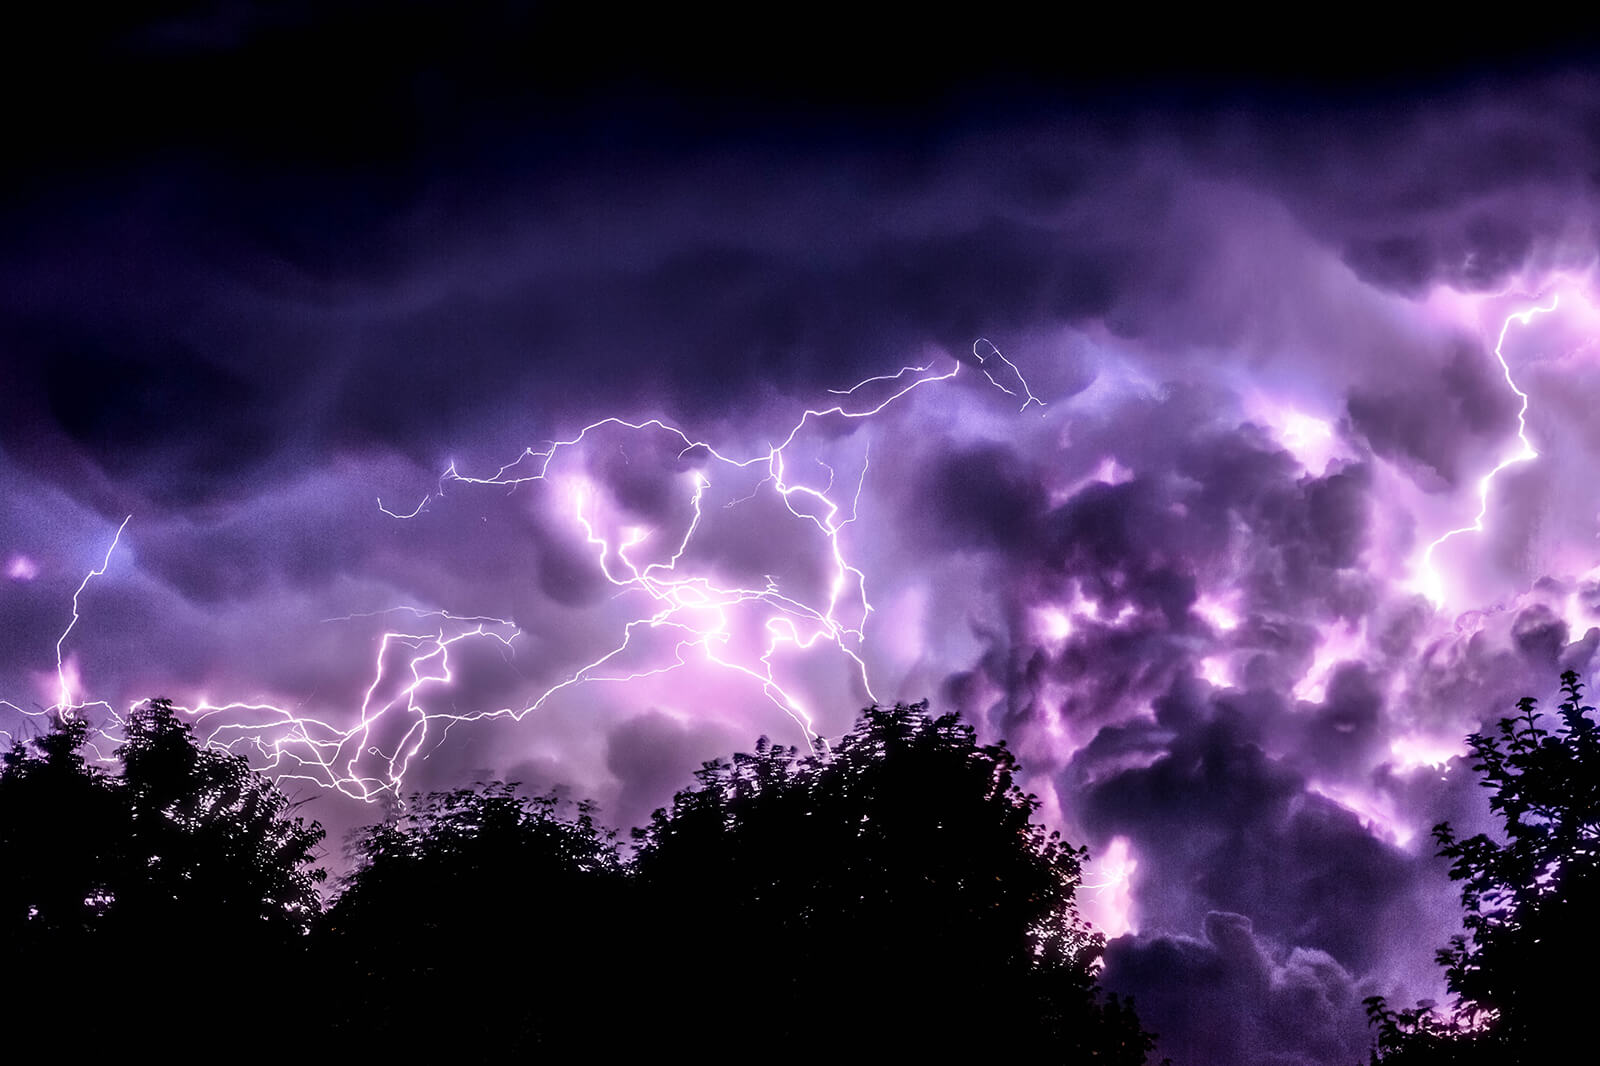 Unique meteorological phenomena like a purple lightning storm